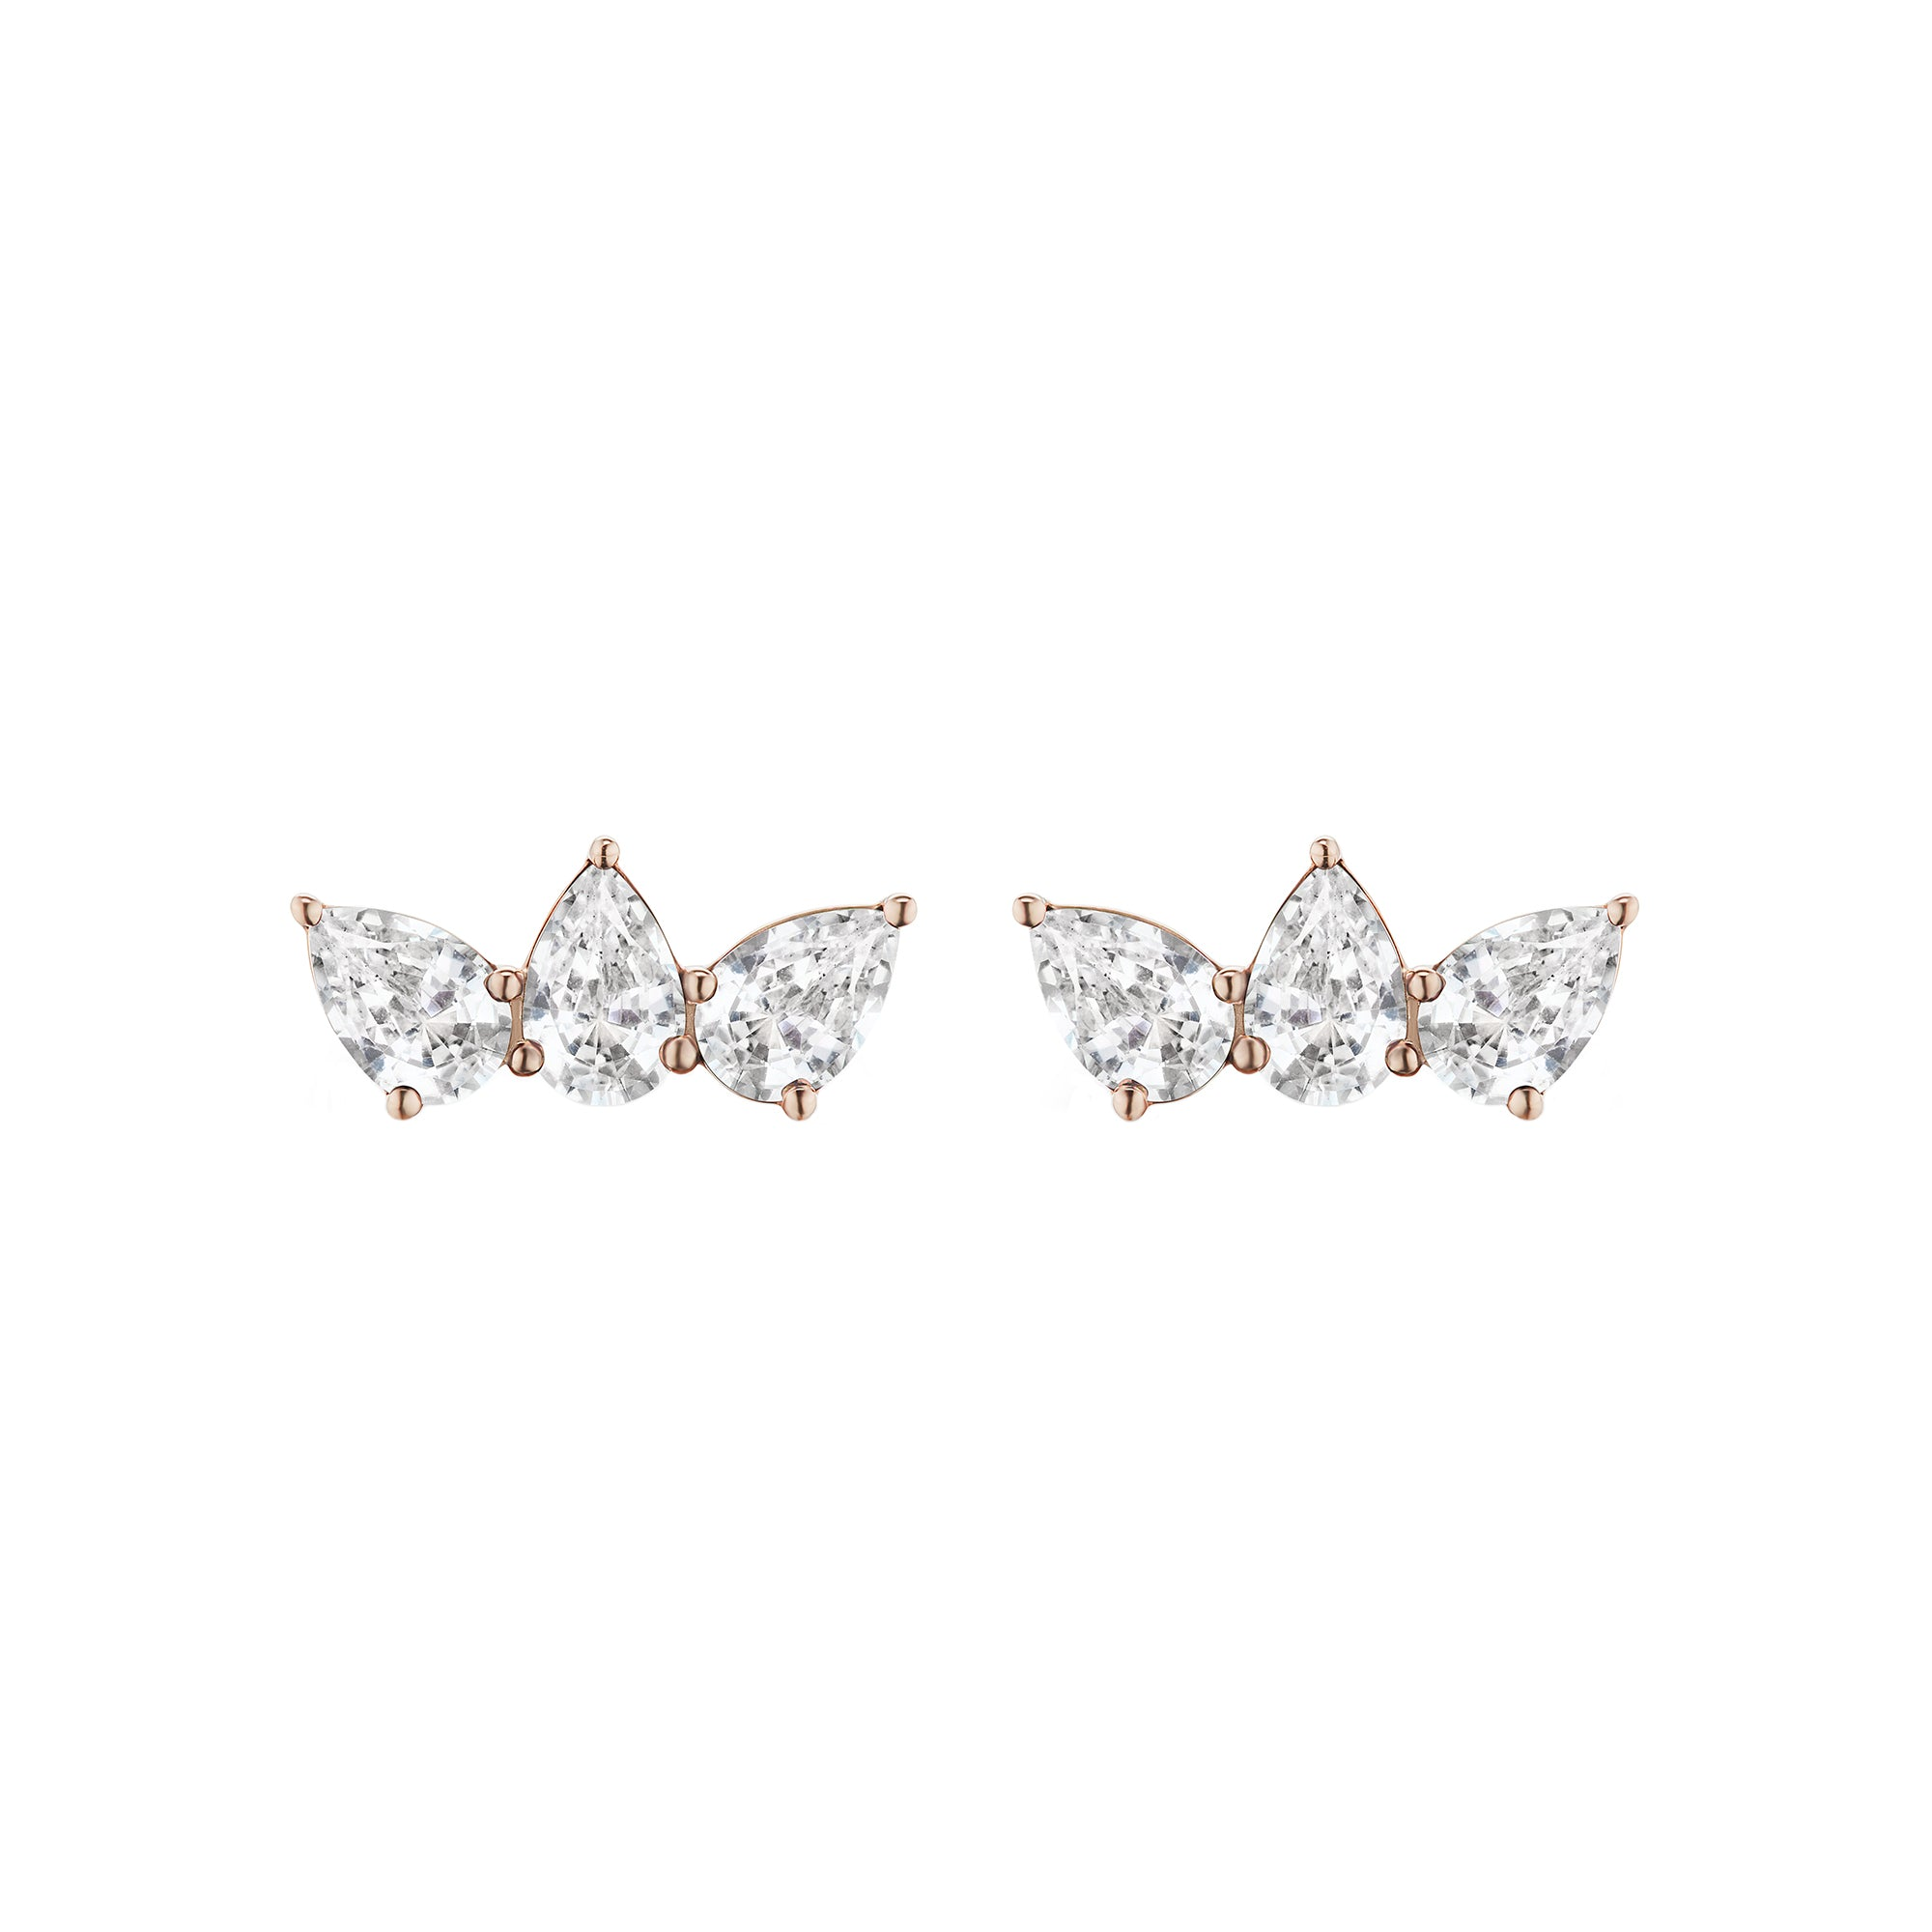 White Sapphire Olympia Studs by Altruist for Broken English Jewelry